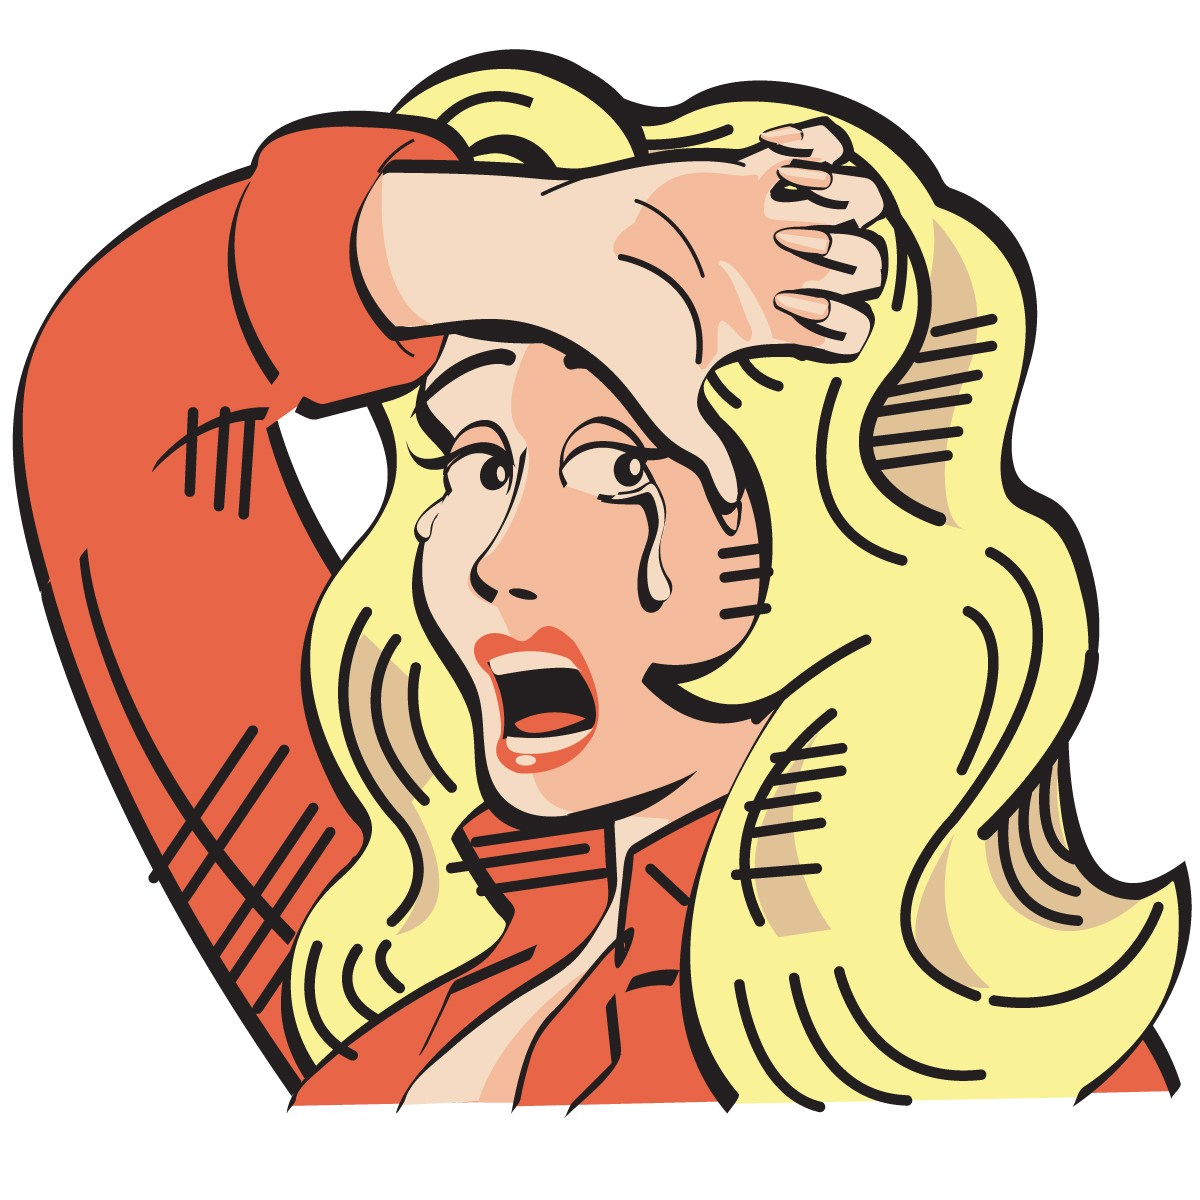 Women crying clipart 7 » Clipart Portal.